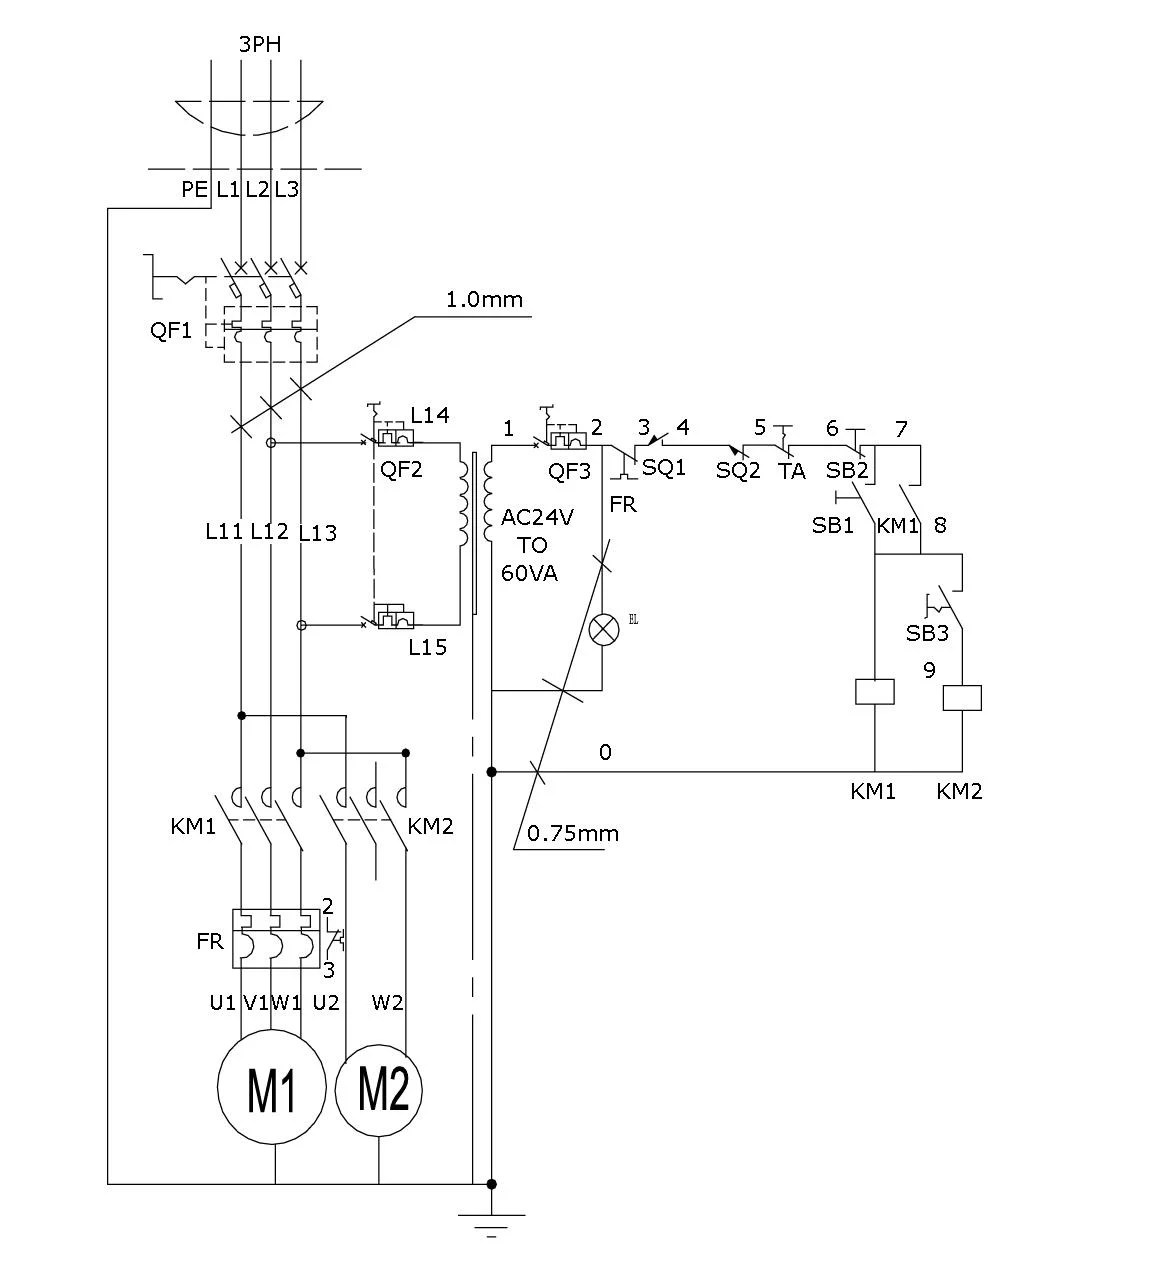 240v single phase wiring diagram fender telecaster pickup 440v 3 get free image about